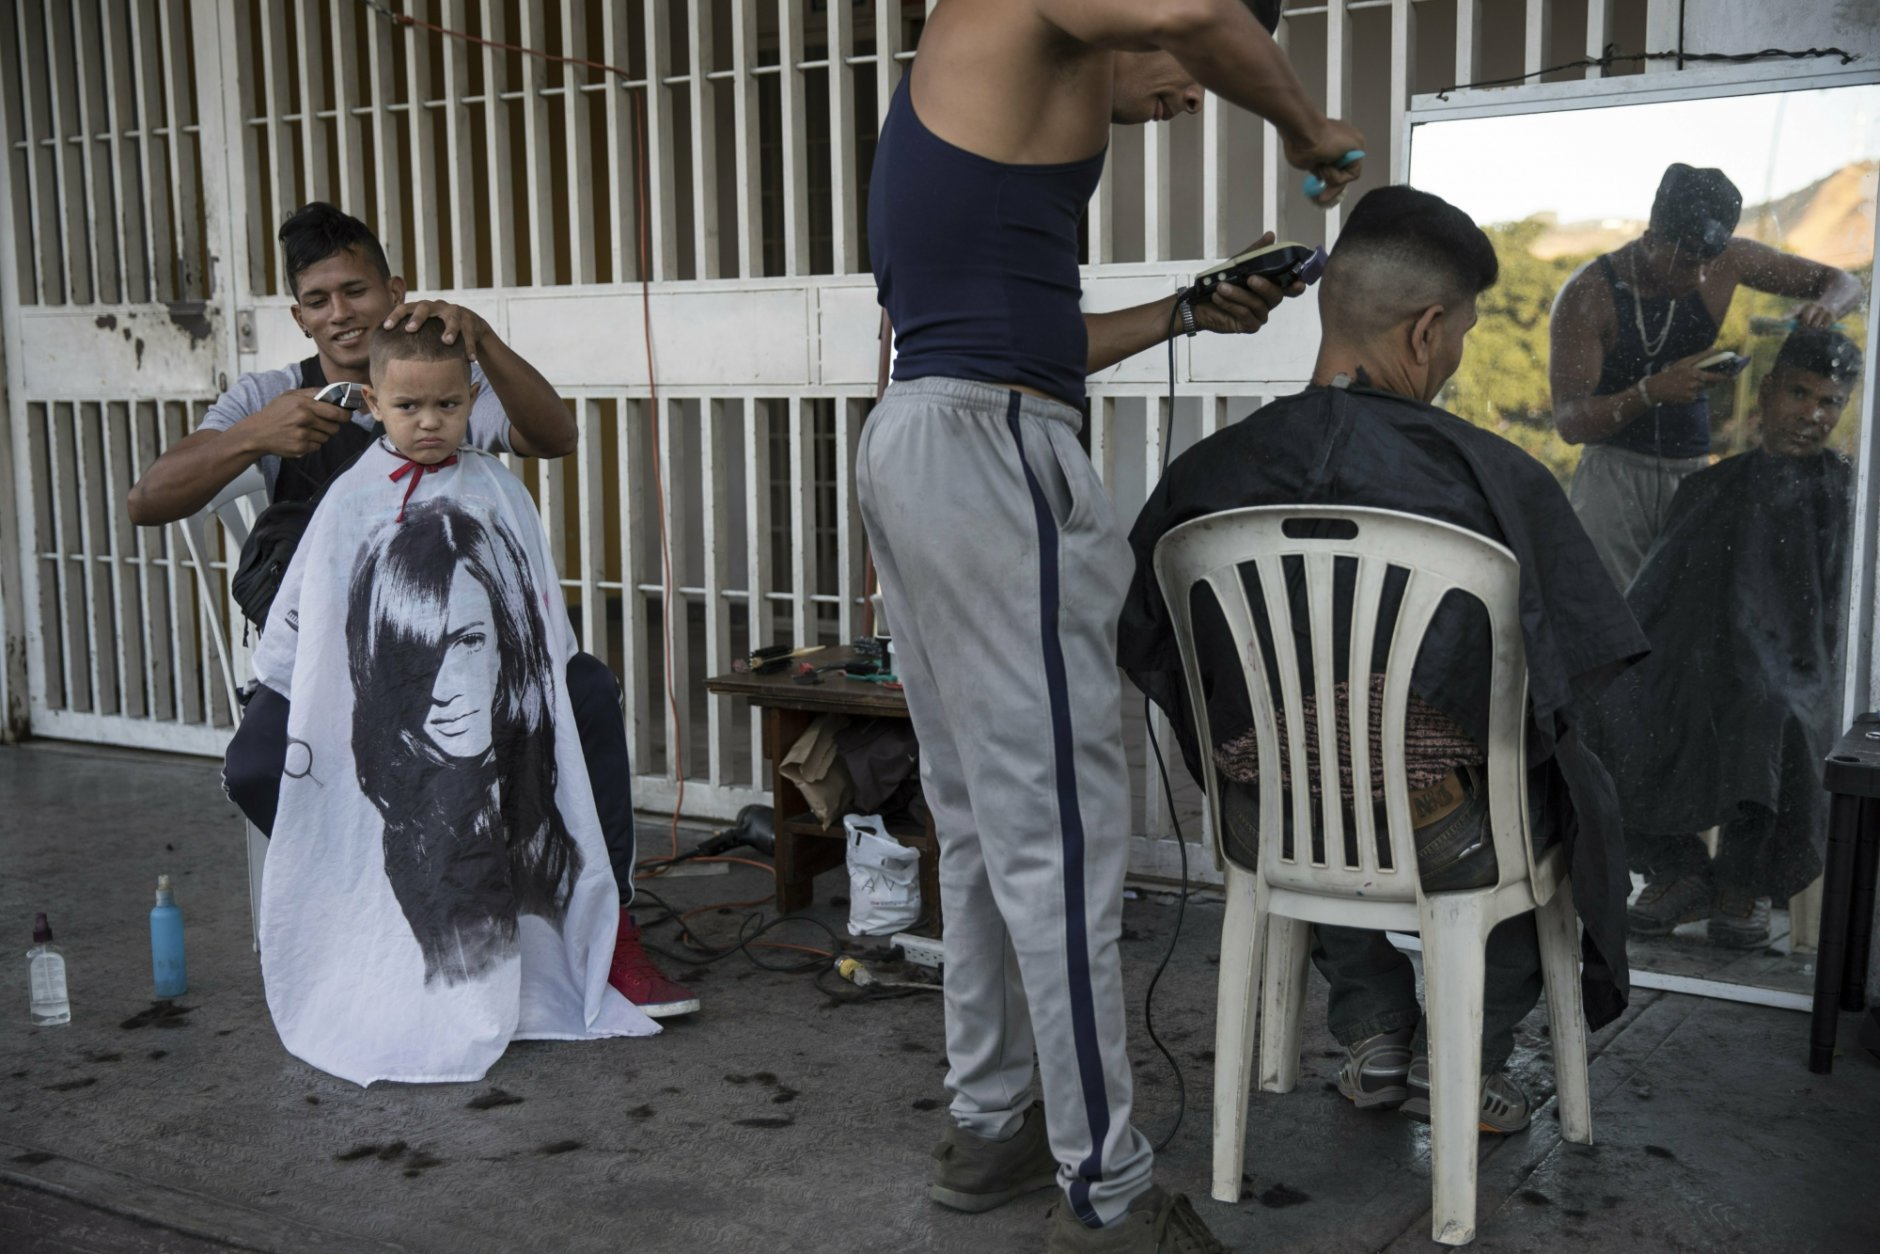 Juan Manuel Marquez, 32, left, cuts the hair of Jean Pierre, 4, at a makeshift barber shop on a sidewalk in Caracas, Venezuela, Friday, Jan. 25, 2019. Juan Manuel charges 1000 bolivars or around .50 cents US for each service. Juan Guaido, the Venezuelan opposition leader who has declared himself interim president appeared in public Friday for the first time in days and vowed to remain on the streets to usher in a transitional government, while President Nicolas Maduro dug in and accused his opponents of orchestrating a coup. (AP Photo/Rodrigo Abd)